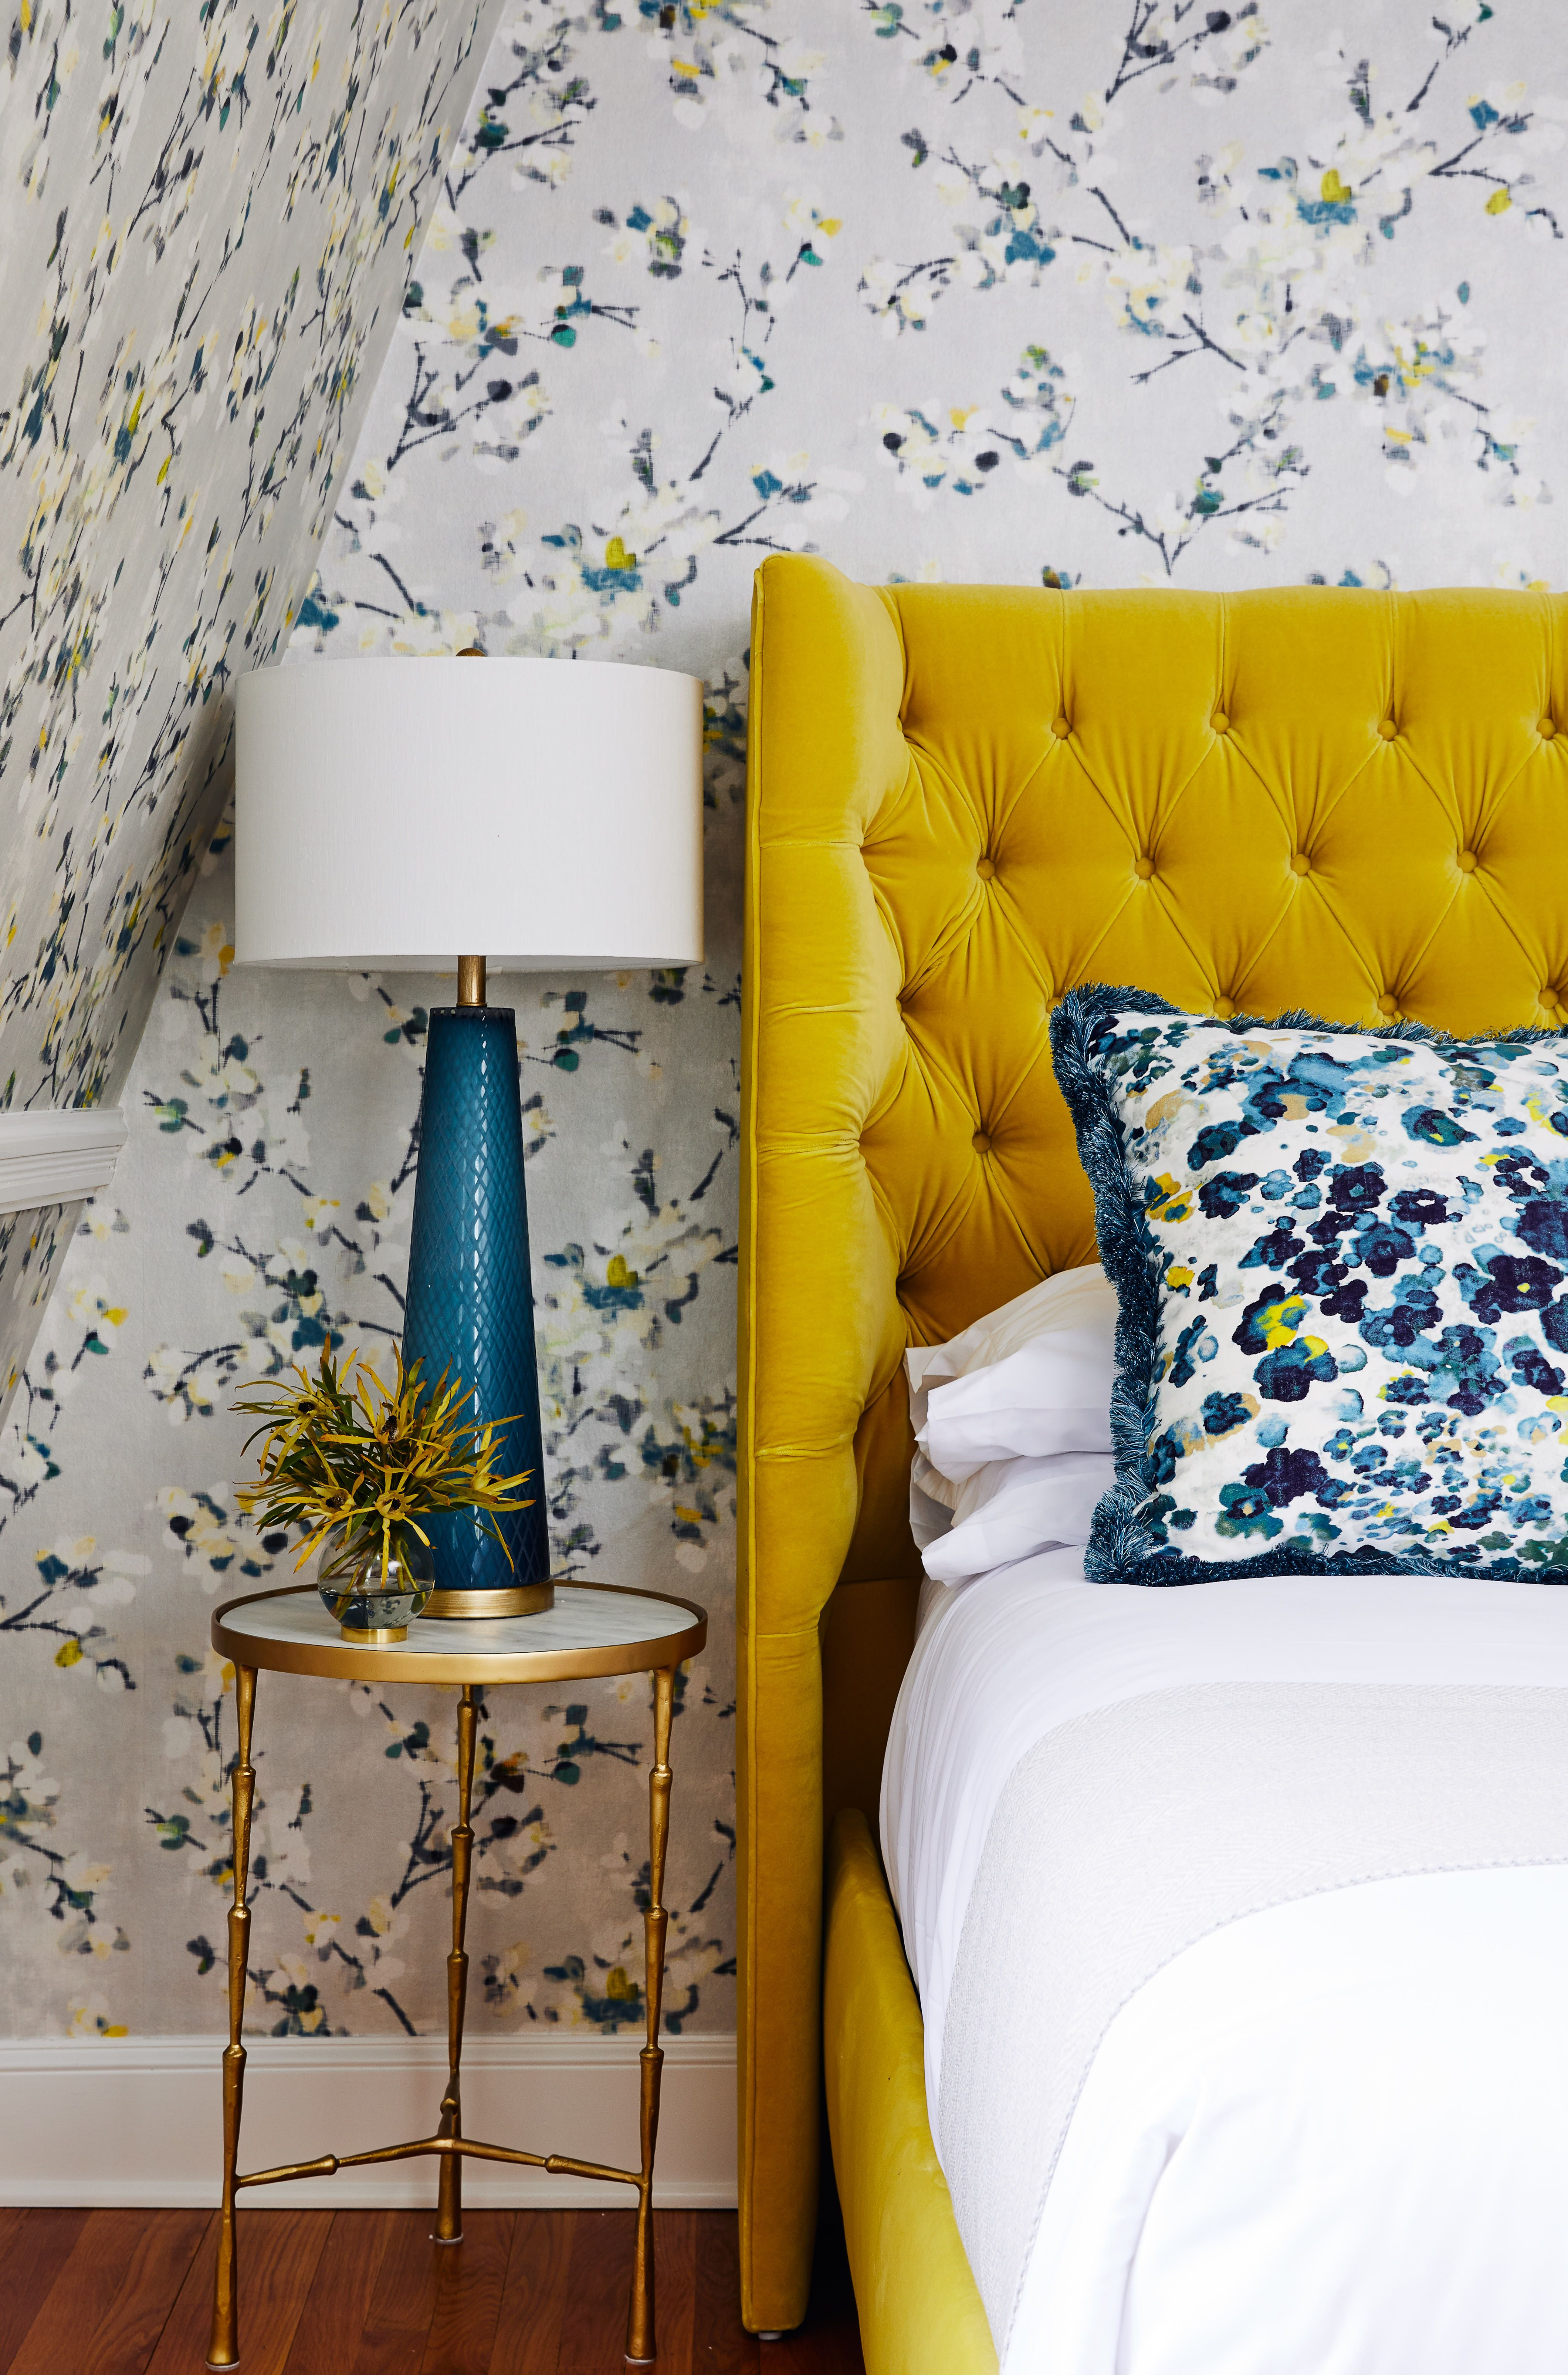 modern floral wallpaper by romo backs a bright yellow